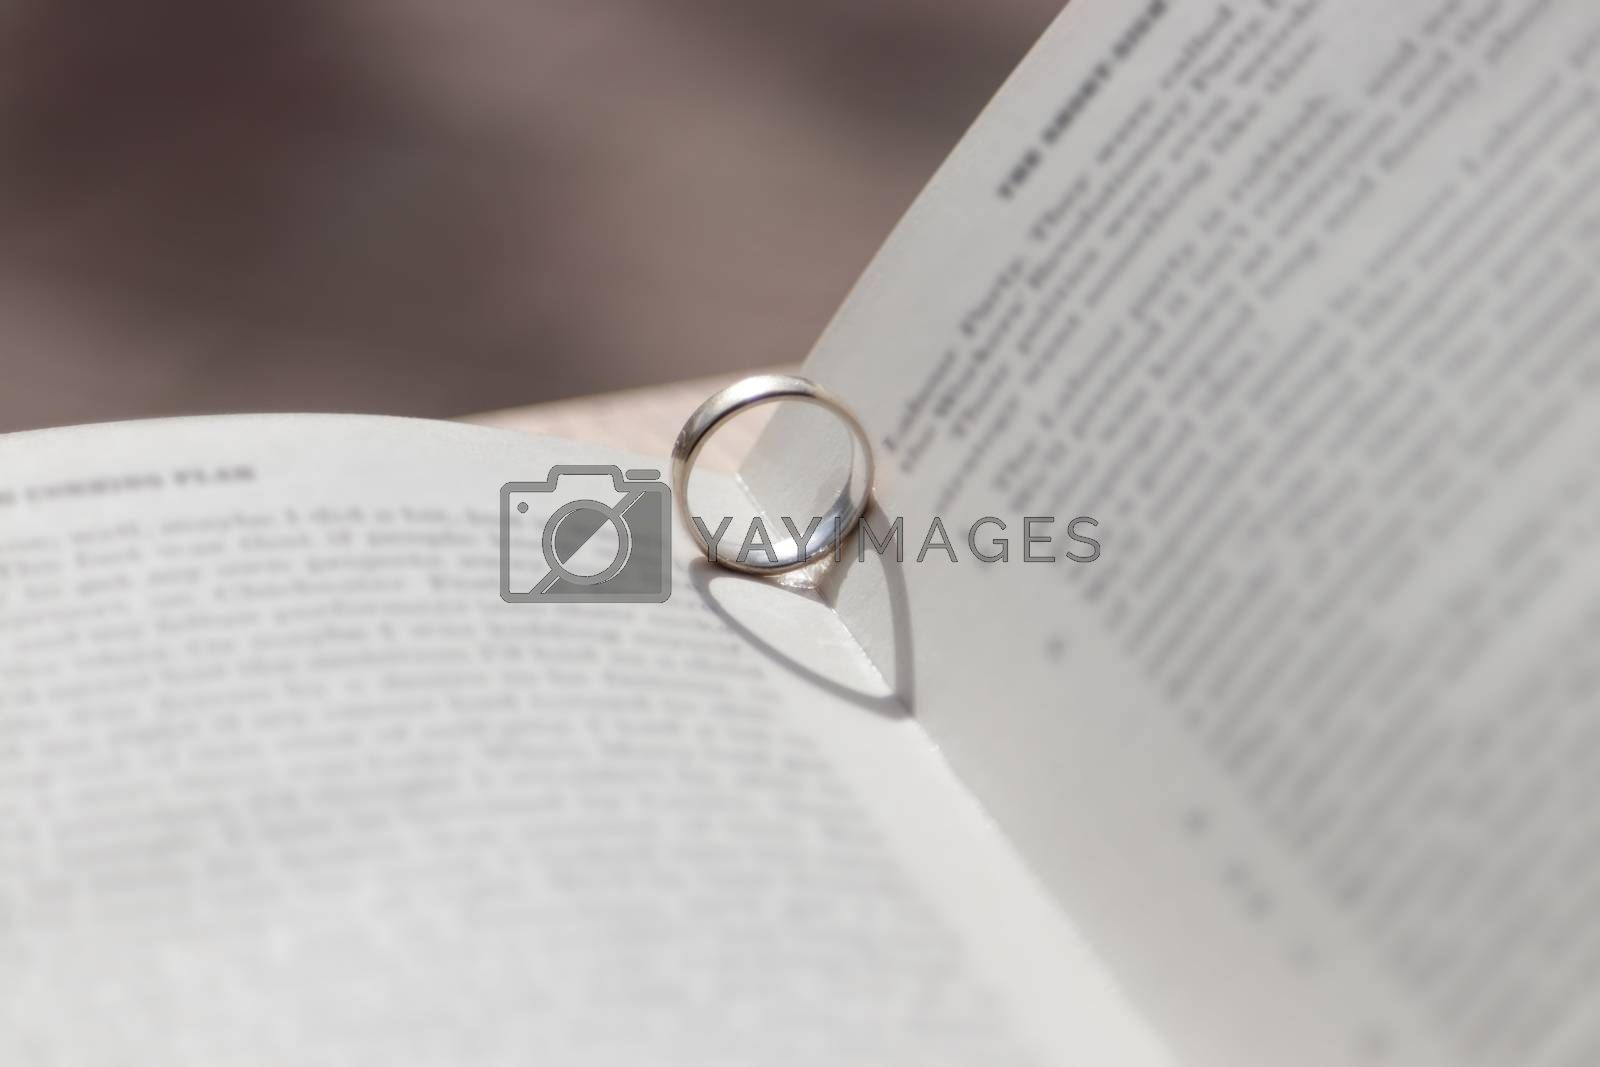 Romantic novel opened with ring giving heart shadow by antonyrobinson